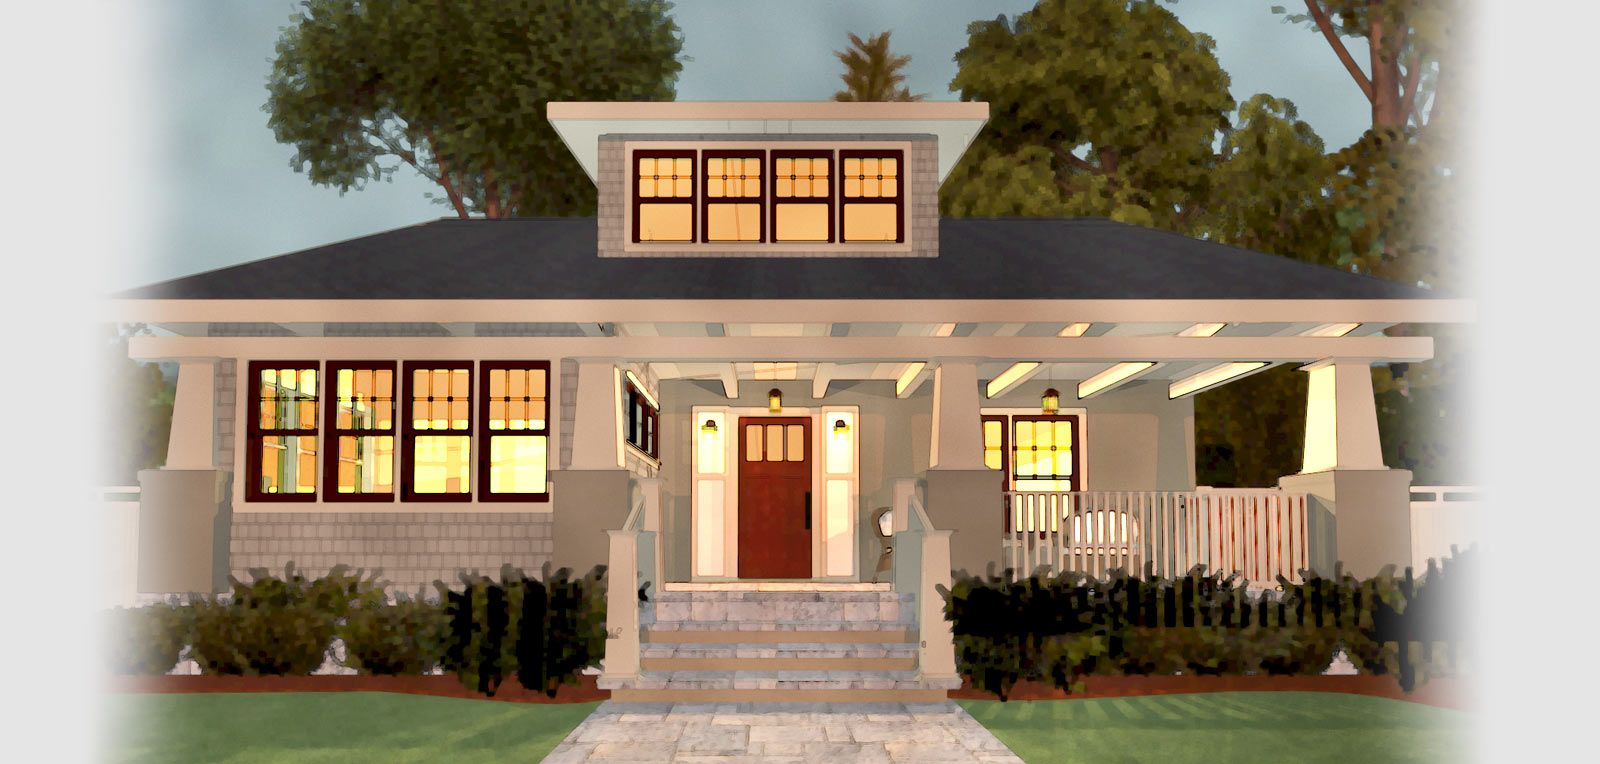 home designer software for design amp remodeling projects blueprint maker  architecture. home designer software for design amp remodeling projects